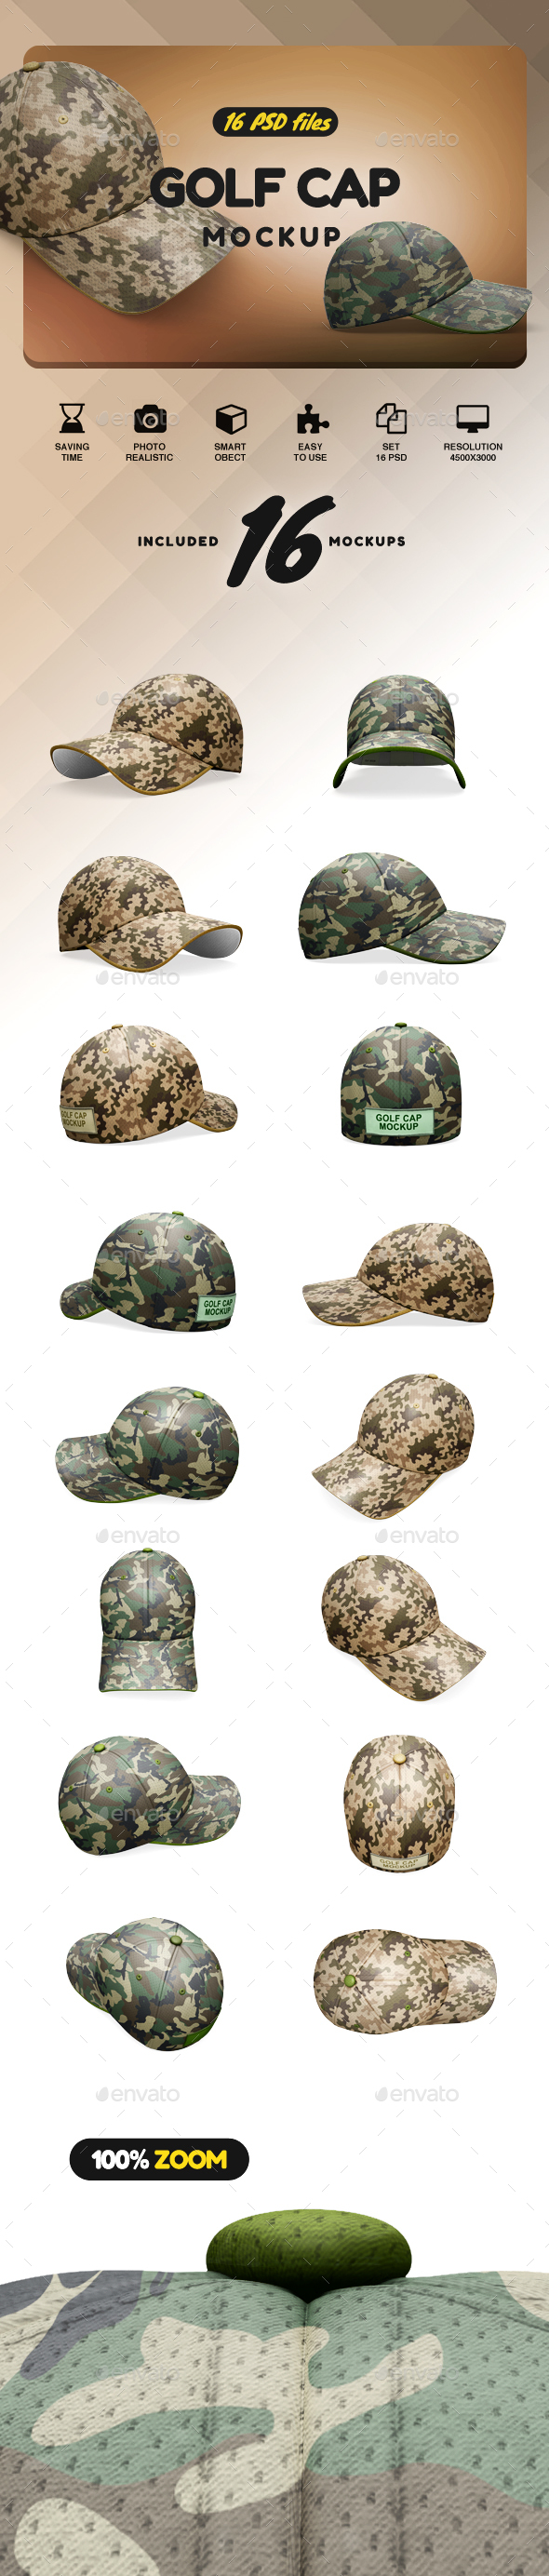 Golf Cap Mockup - Product Mock-Ups Graphics